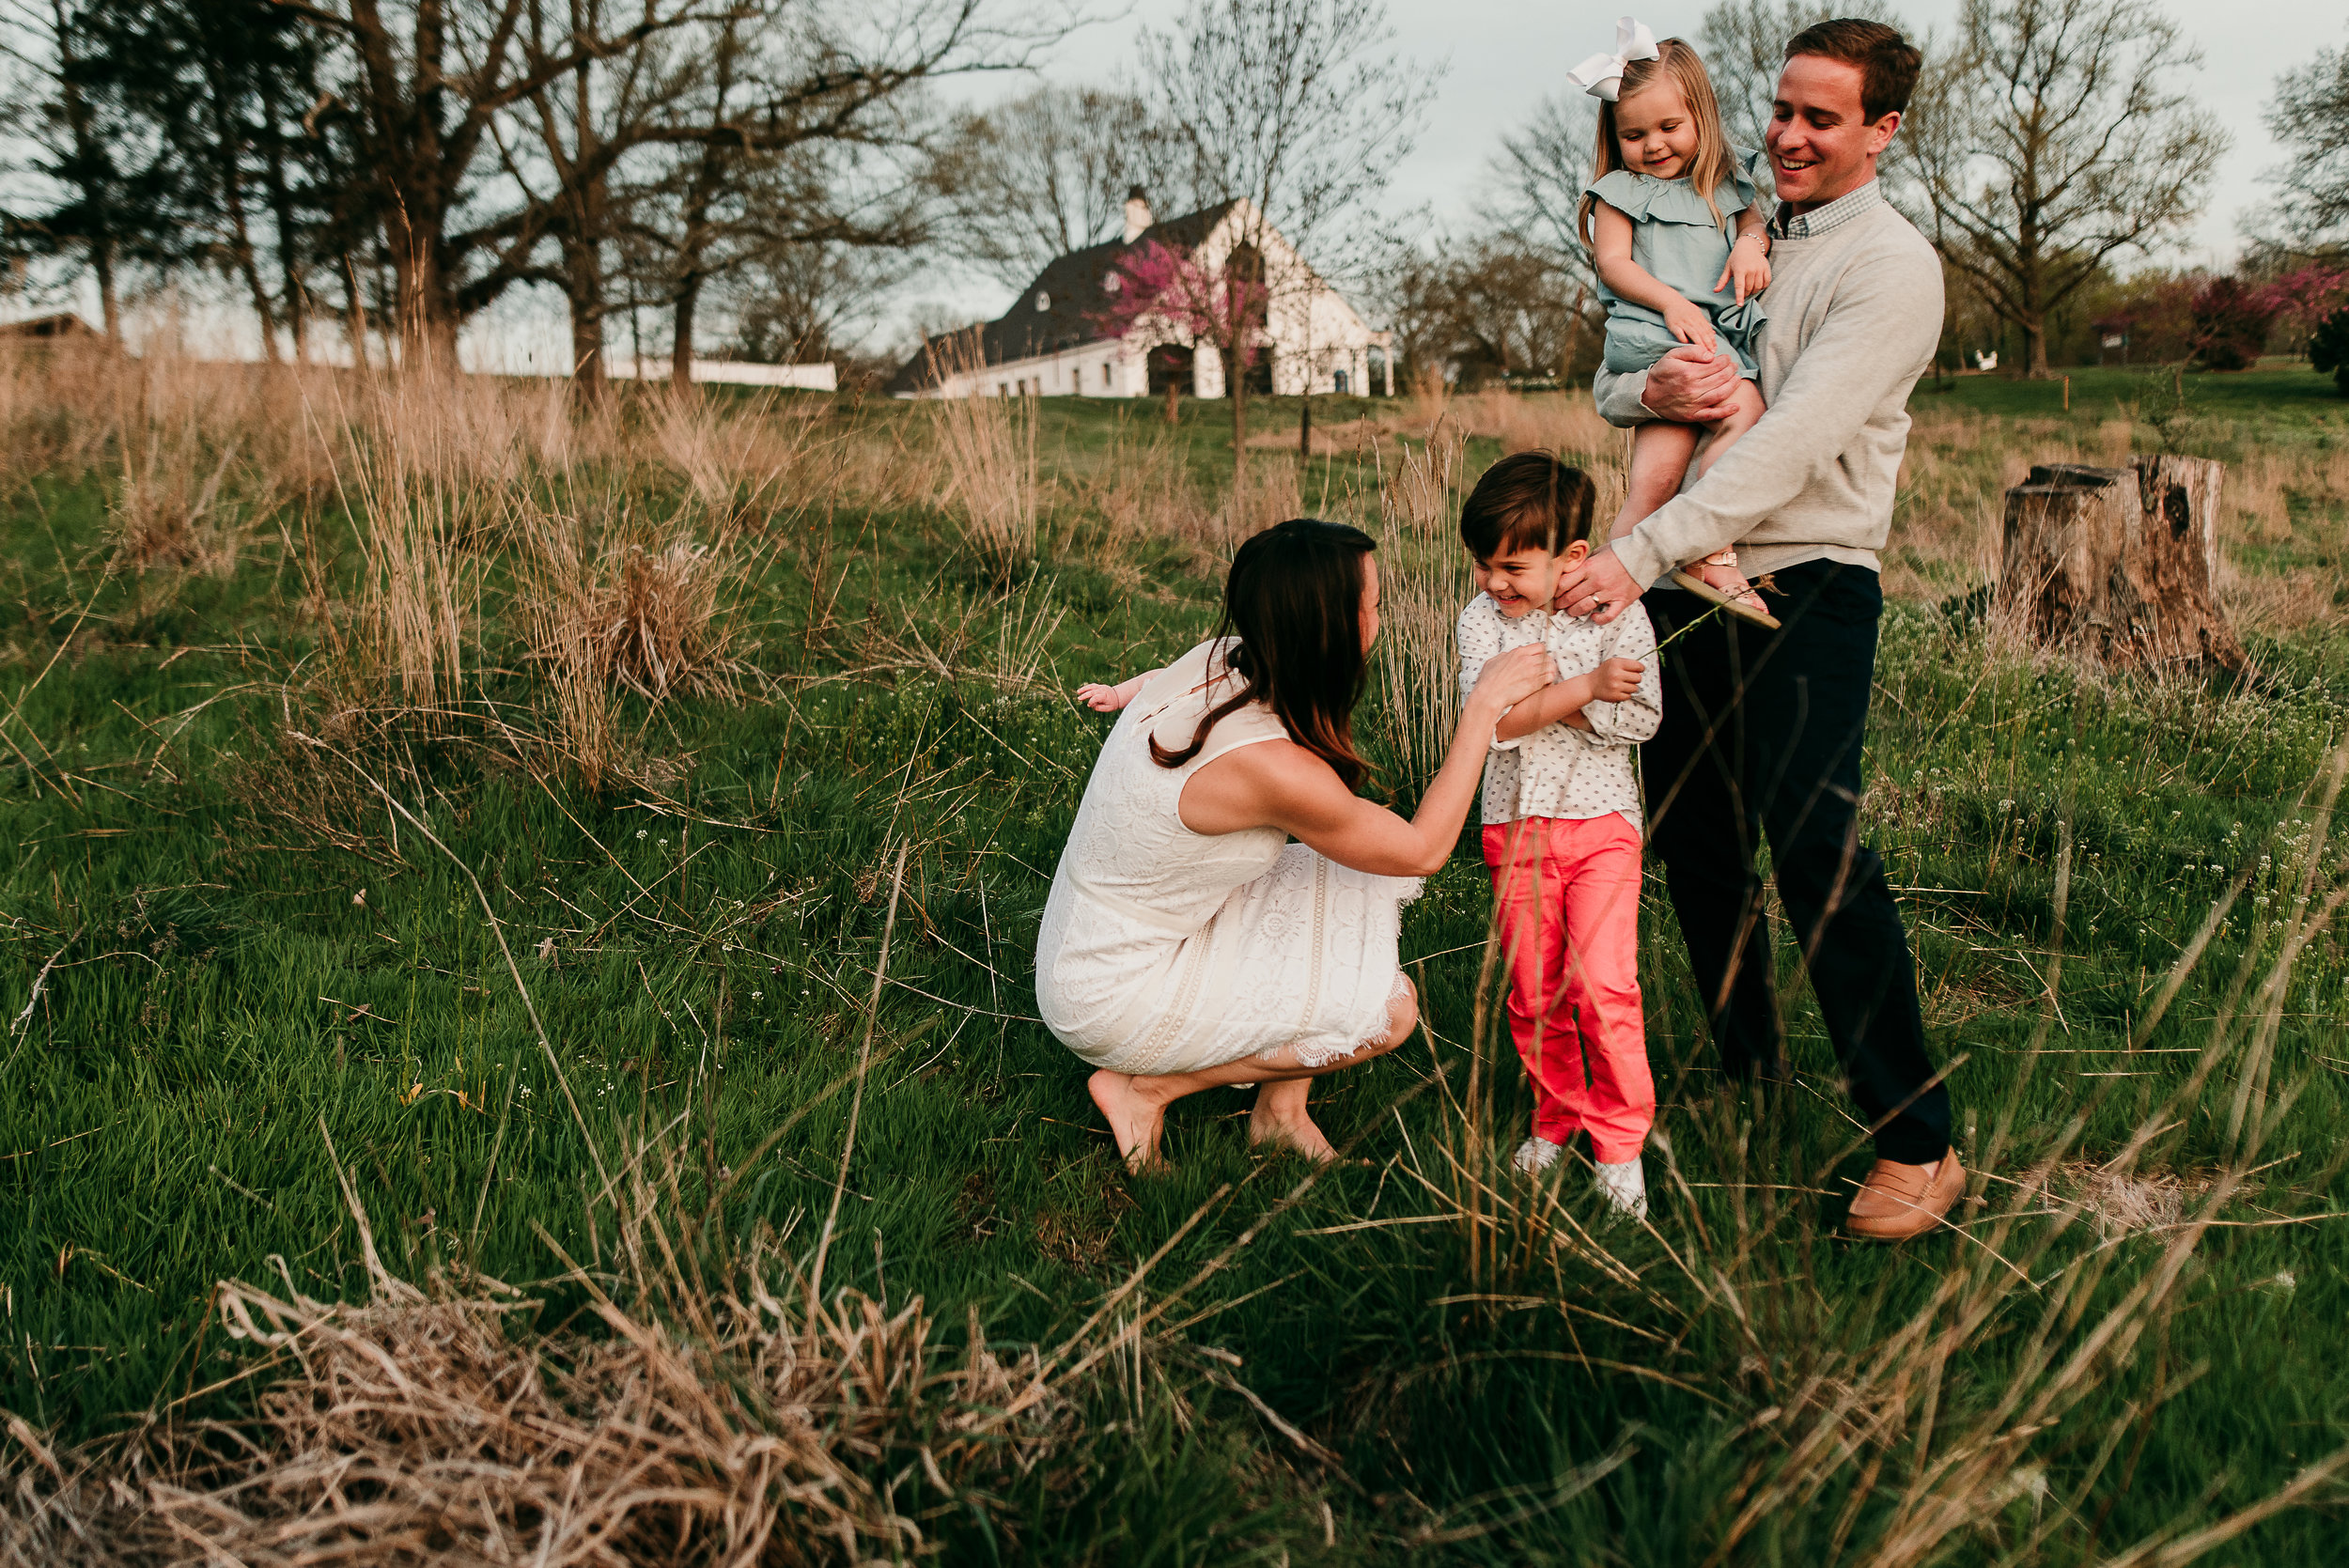 family laughing together in field